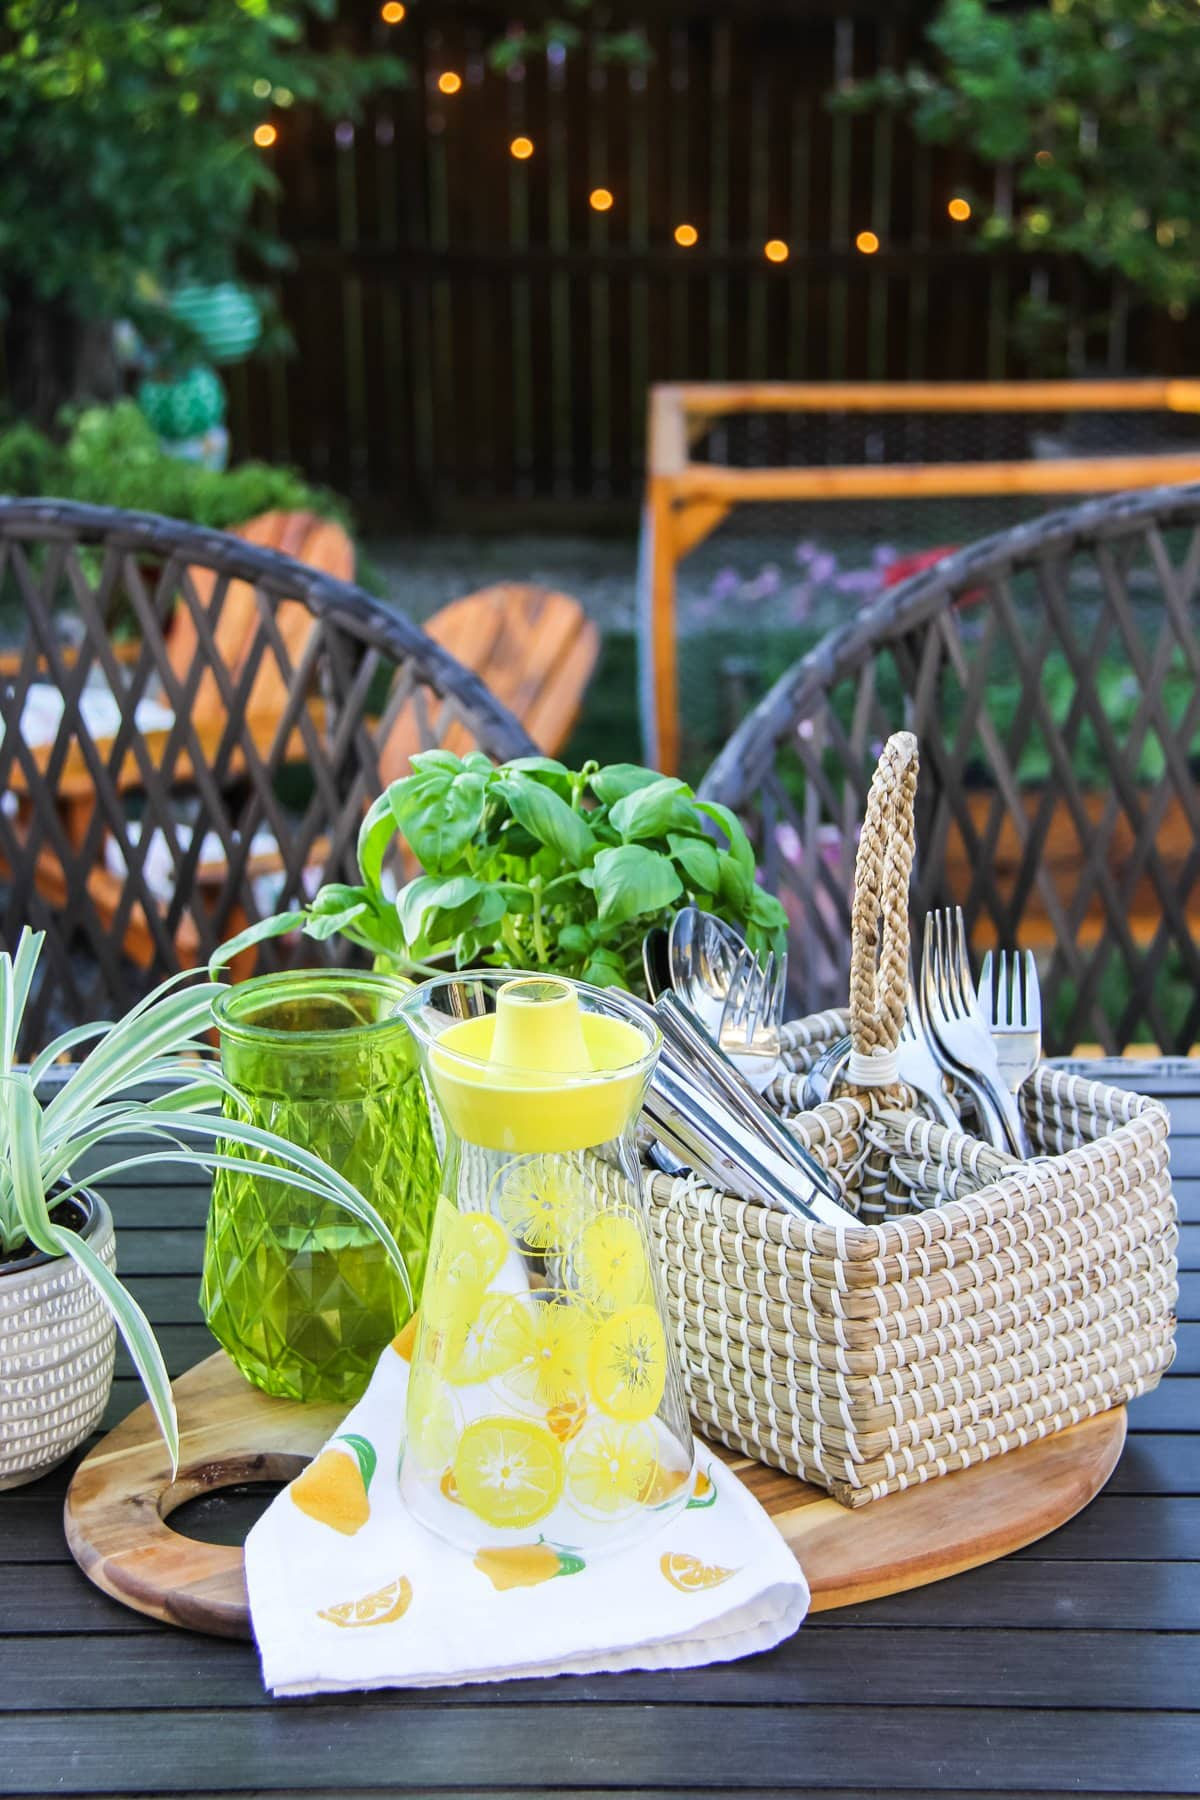 a basket of cutlery, a yellow glass jug and a basil plant sit on a table. in the background are wicker chairs and a tree and fence with a string of patio lights